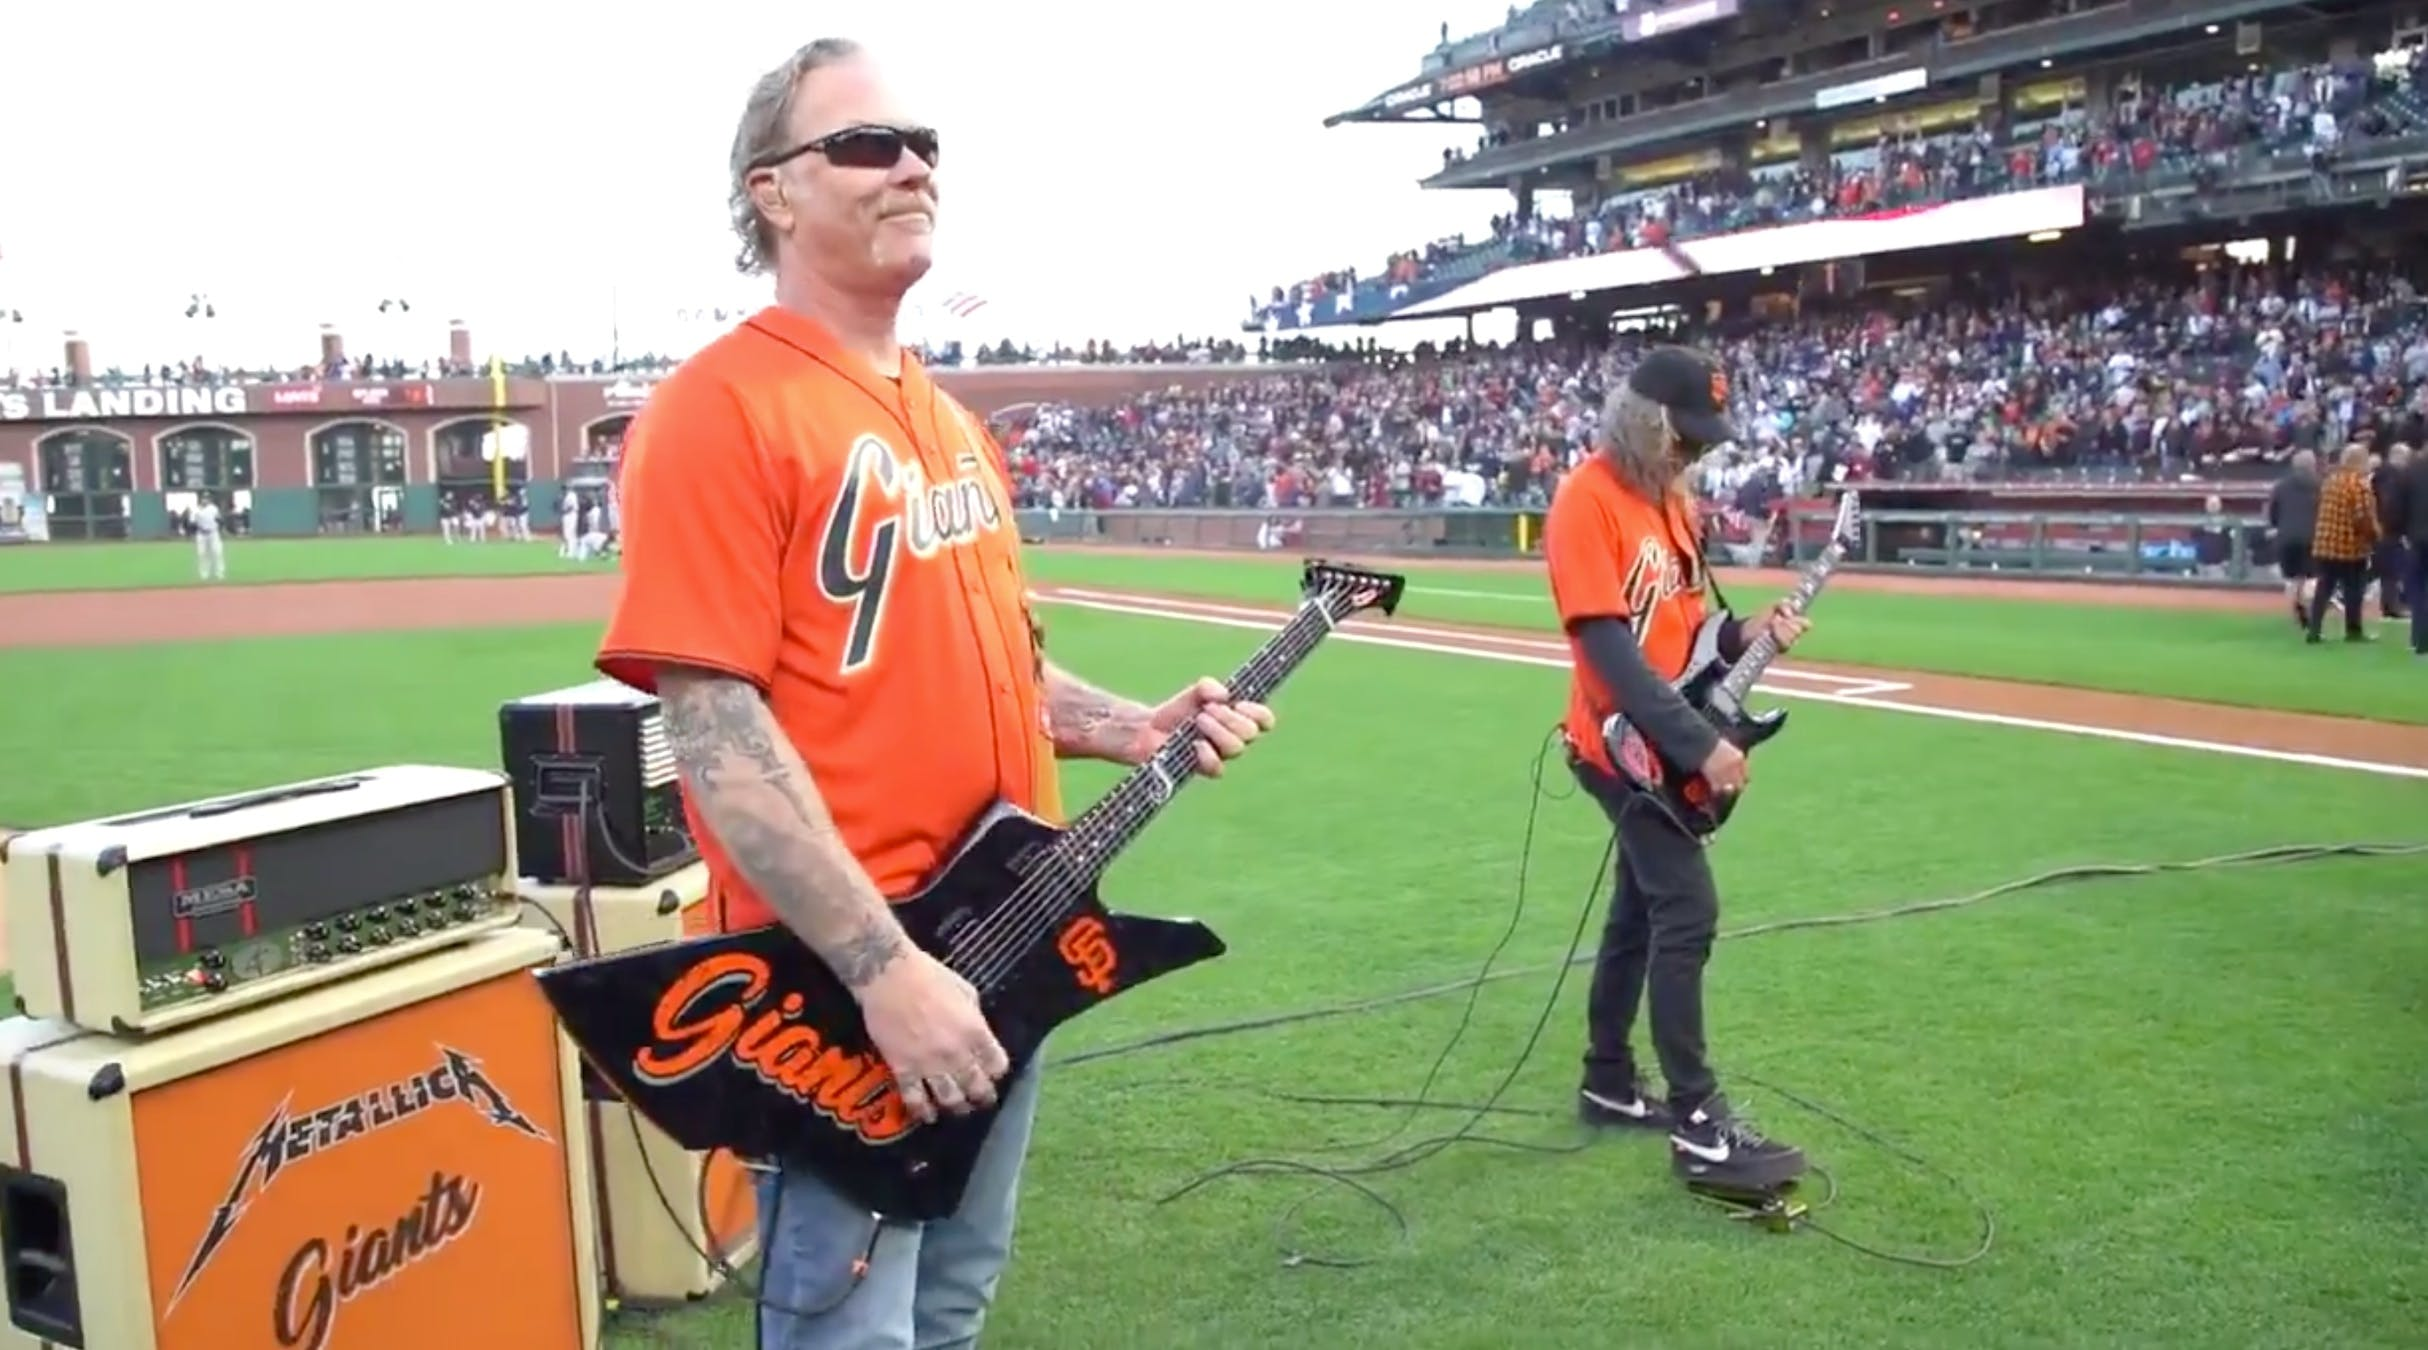 Watch Metallica's James Hetfield And Kirk Hammett Play The National Anthem At A San Francisco Giants Game